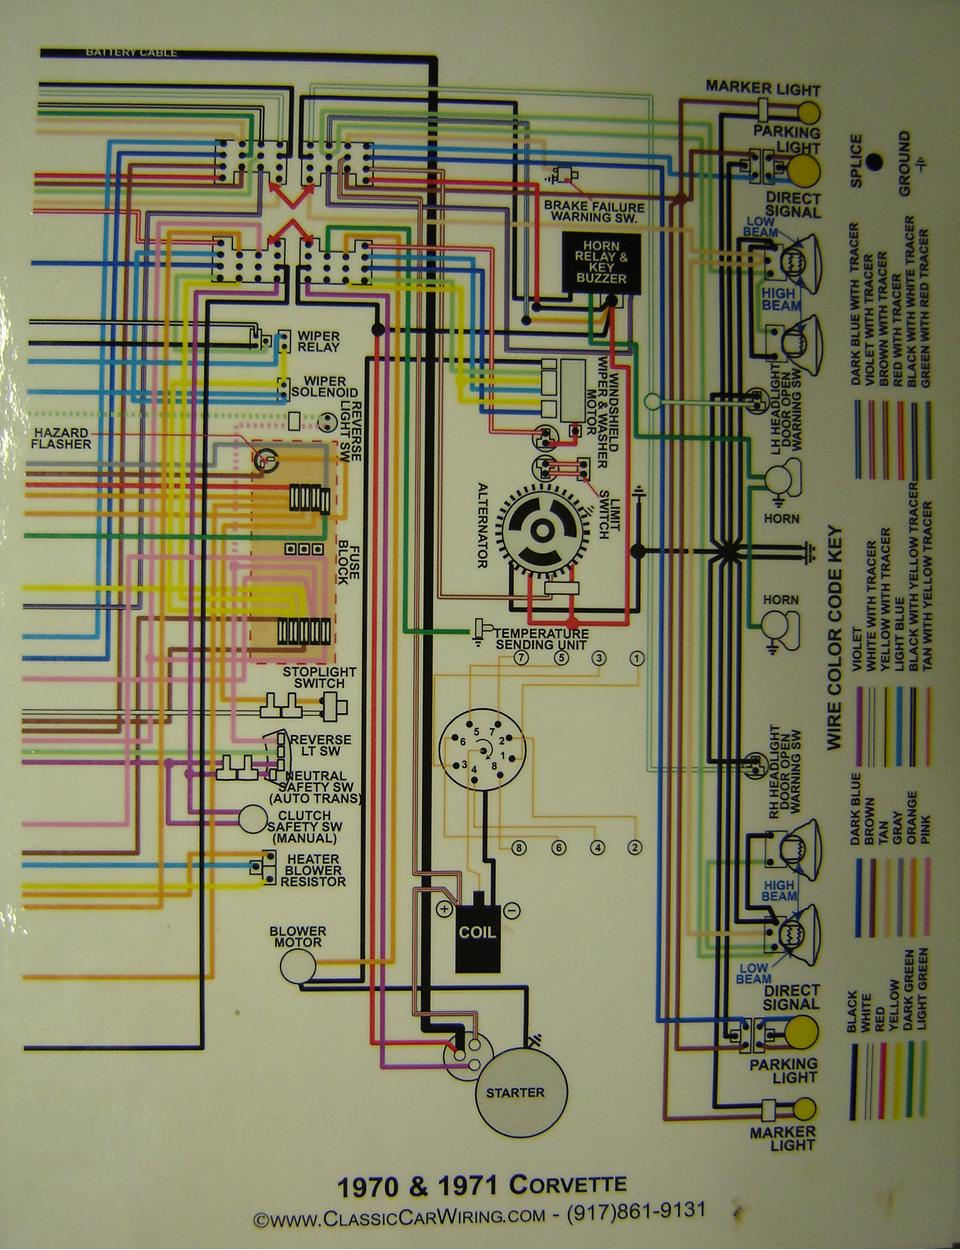 1970 71 corvette color wiring diagram B chevy diagrams 1989 corvette engine wiring harness at n-0.co